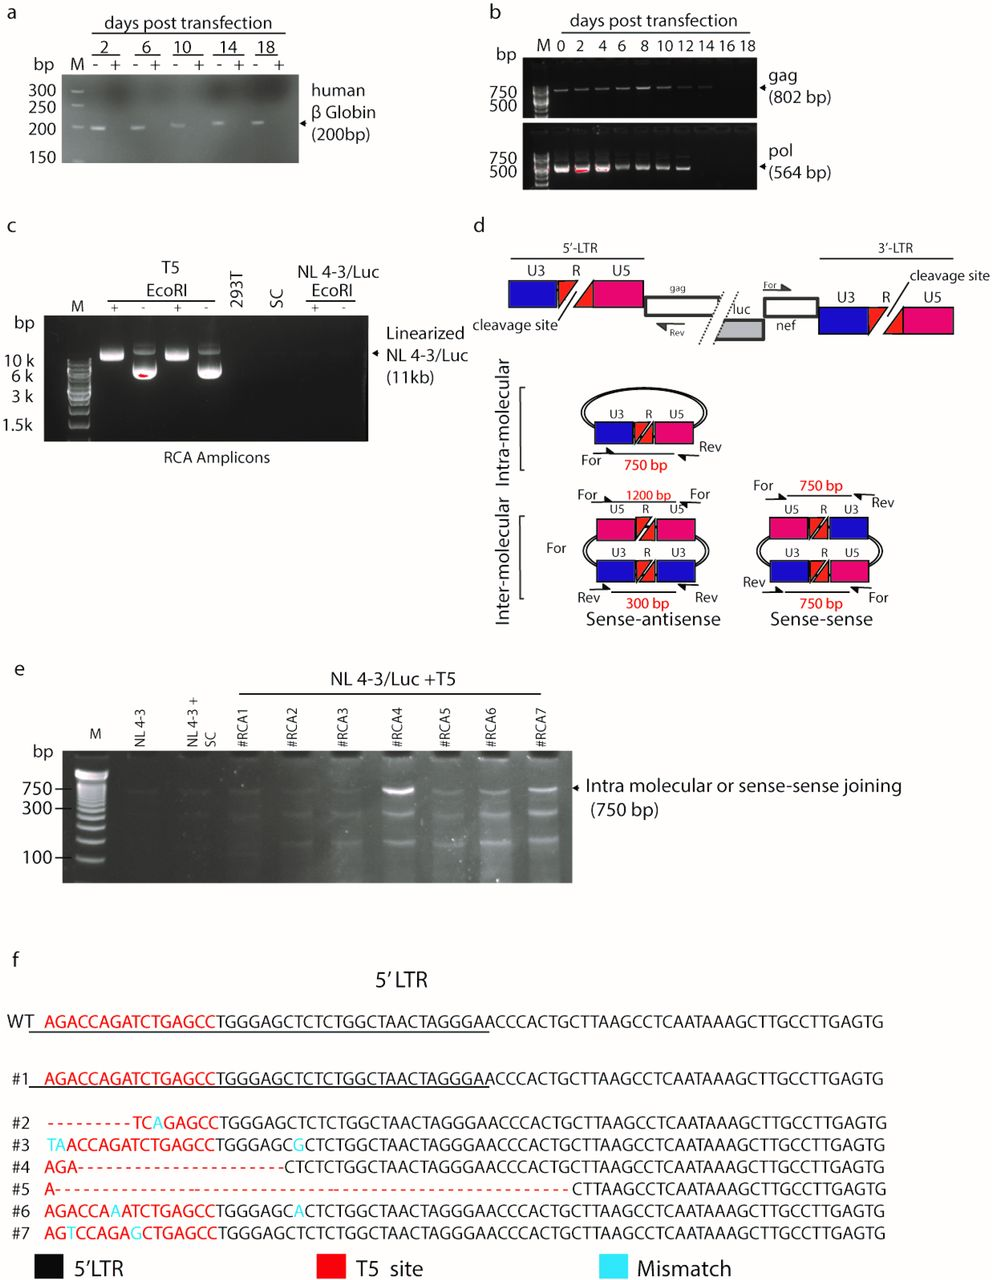 The excised HIV-1 provirus persists and circularizes after CRISPR/Cas9-transfection. a, PCR analysis of β-globin gene in genomic <t>DNA</t> samples from NL4-3/Luc-transduced 293T cells extracted at day 2, 6, 10, 14 and 18 post CRISPR/Cas9 transfection, before (−) and after (+) <t>ATP-dependent</t> DNA exonuclease digestion. M: Molecular weight marker. b, PCR analysis of gag and pol sequences of genomic DNA treated as in a with ATP-dependent DNA exonuclease digestion. c, Rolling circle amplification (RCA) of DNA samples extracted from NL4-3/Luc-transduced at day 10 post-CRISPR/Cas9 and T5 or SC gRNAs transfection. This technique allows selective amplification of circularized DNA as concatemers, requiring digestion with a single cutter to obtain full length fragments. RCA amplicons were electrophoresed as such (−) or after EcoR I digestion (+), which cuts NL4-3/Luc once in pol . 293 T were used as a negative control. d, Schematic of circular molecules of HIV-1 provirus formed by a single molecule or two molecules bound together in sense-to-sense or sense-to-antisense orientation and size of the amplicons of interest written in red and generated by the primers indicated. e, PCR fragments obtained from RCA amplicons from 7 different experiments (#RCA1-7) using the primers shown in Fig. 2d . f, Alignment of LTR sequencing of the 750-bp fragments obtained from #RCA1-7 and retrieved from the agarose gel of Fig. 2e . The red sequences indicate the T5 gRNA annealing site. Dashes indicate base deletions and blue letters denote nucleotide mismatches compared to wild-type pNL4-3 sequence.